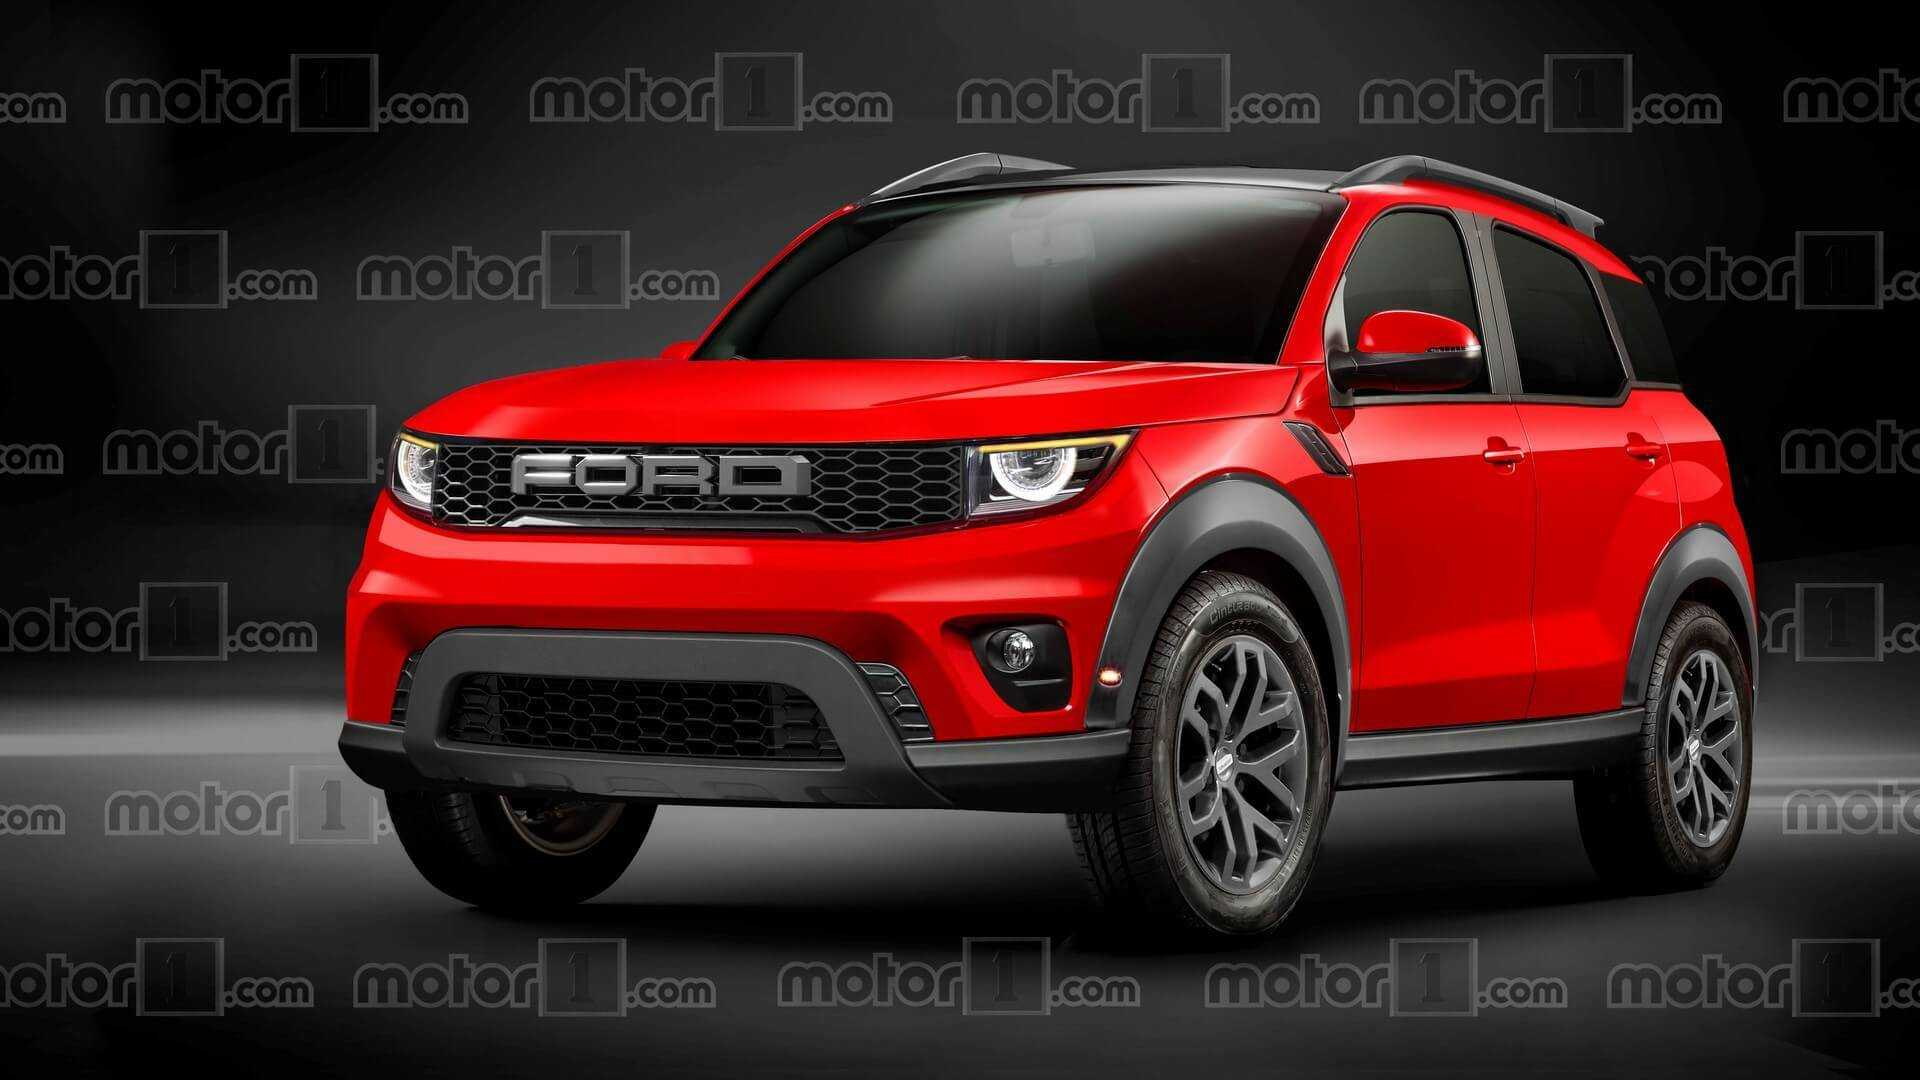 Best Off Road Suv 2020 2020 New Models Guide: 30 Cars, Trucks, And SUVs Coming Soon